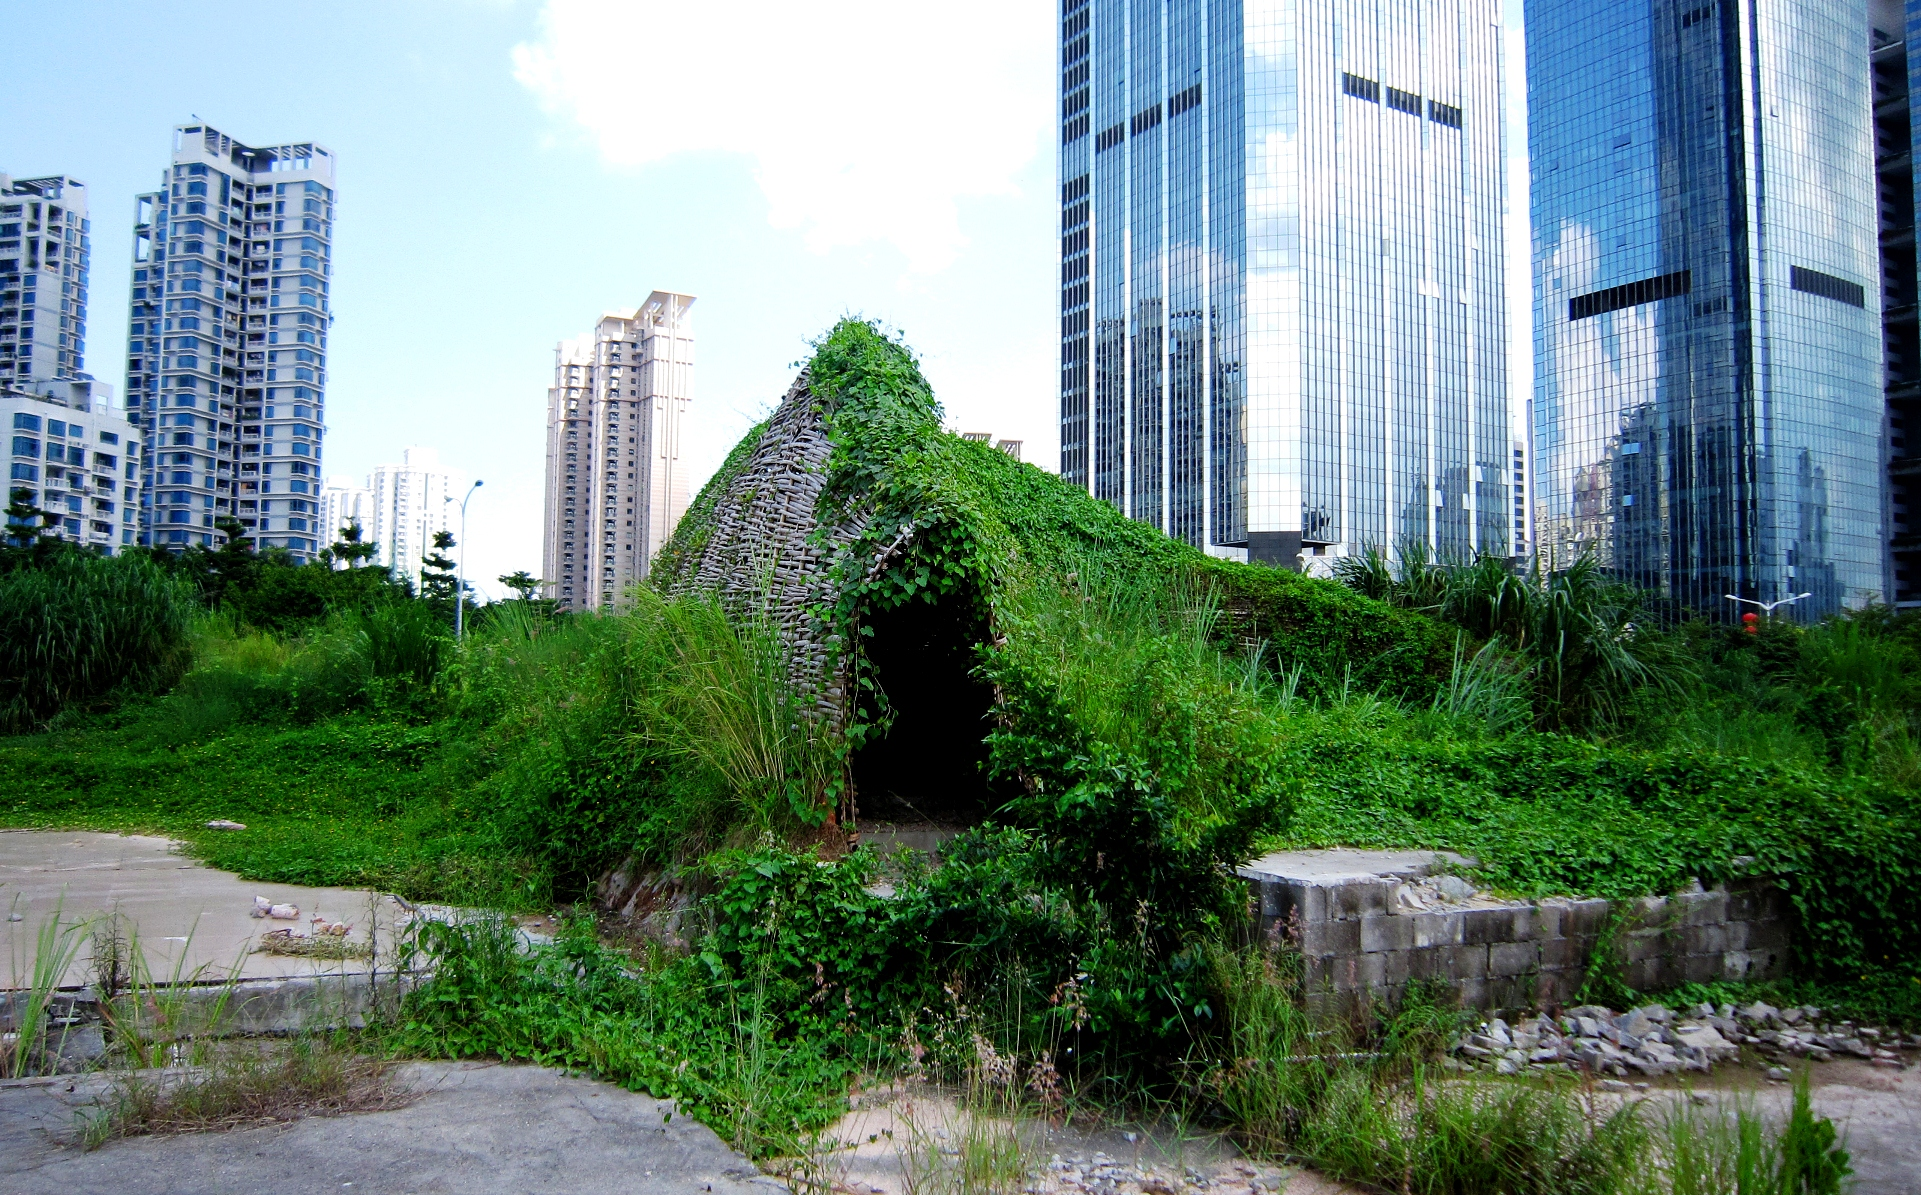 Bug_Dome_by_WEAK!_in_Shenzhen